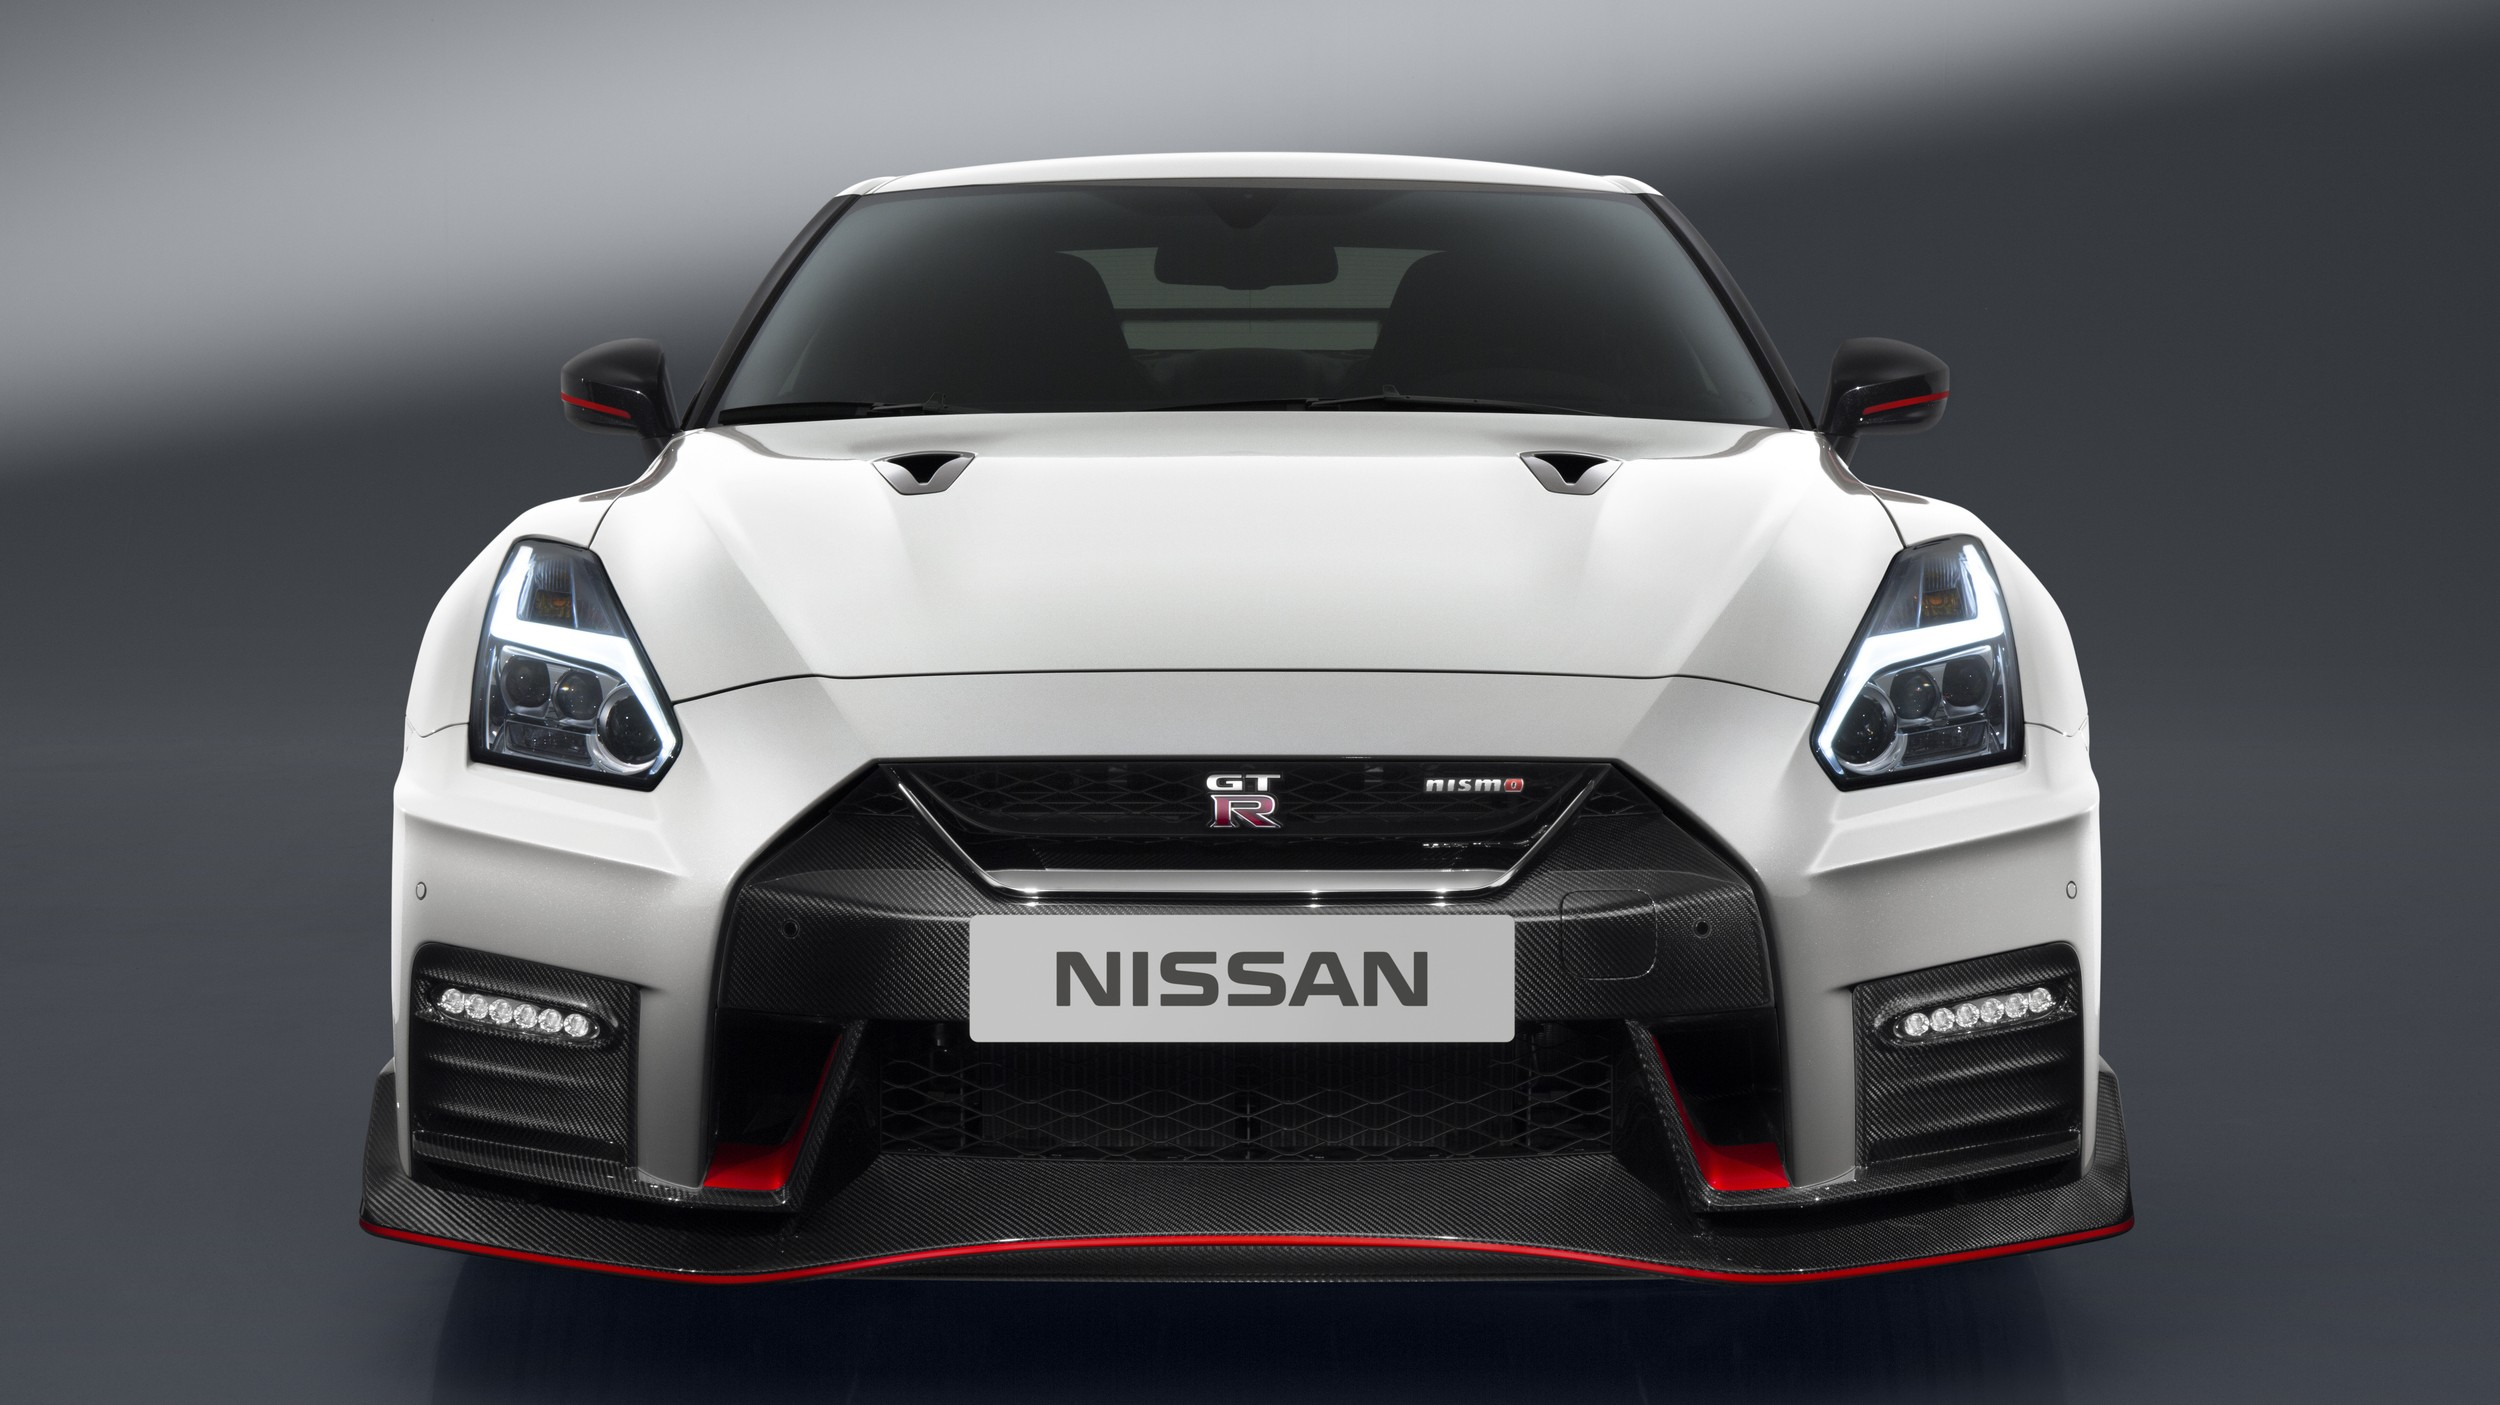 Nissan Gtr Godzilla >> 2021 Nissan GT-R - What We Know So Far - autoevolution